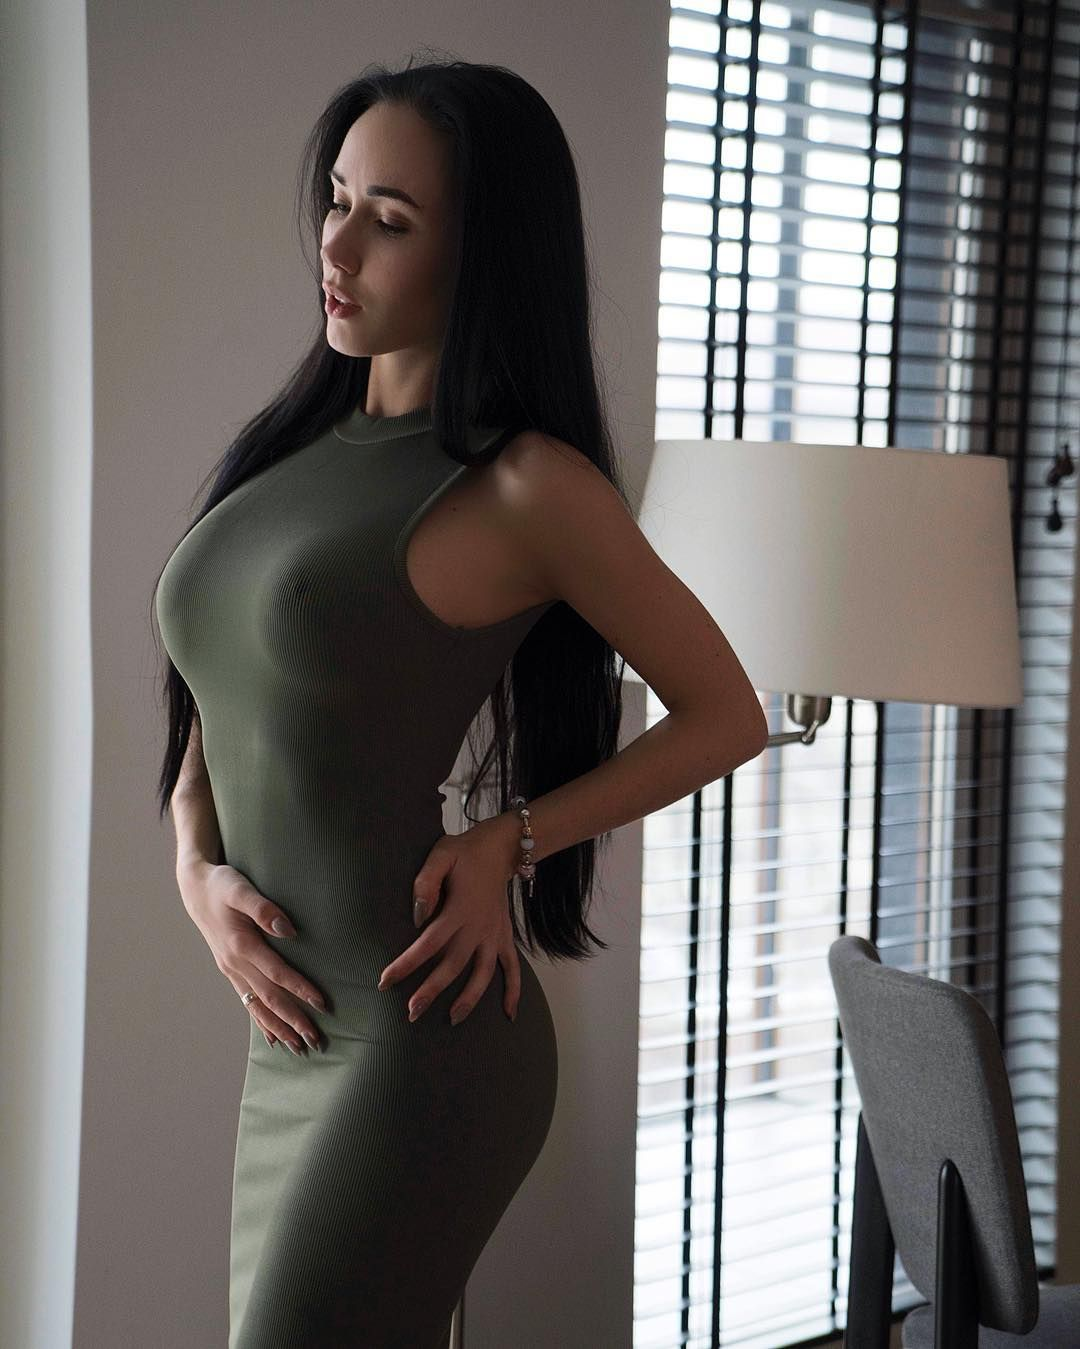 Is a cute Nina Serebrova nude photos 2019